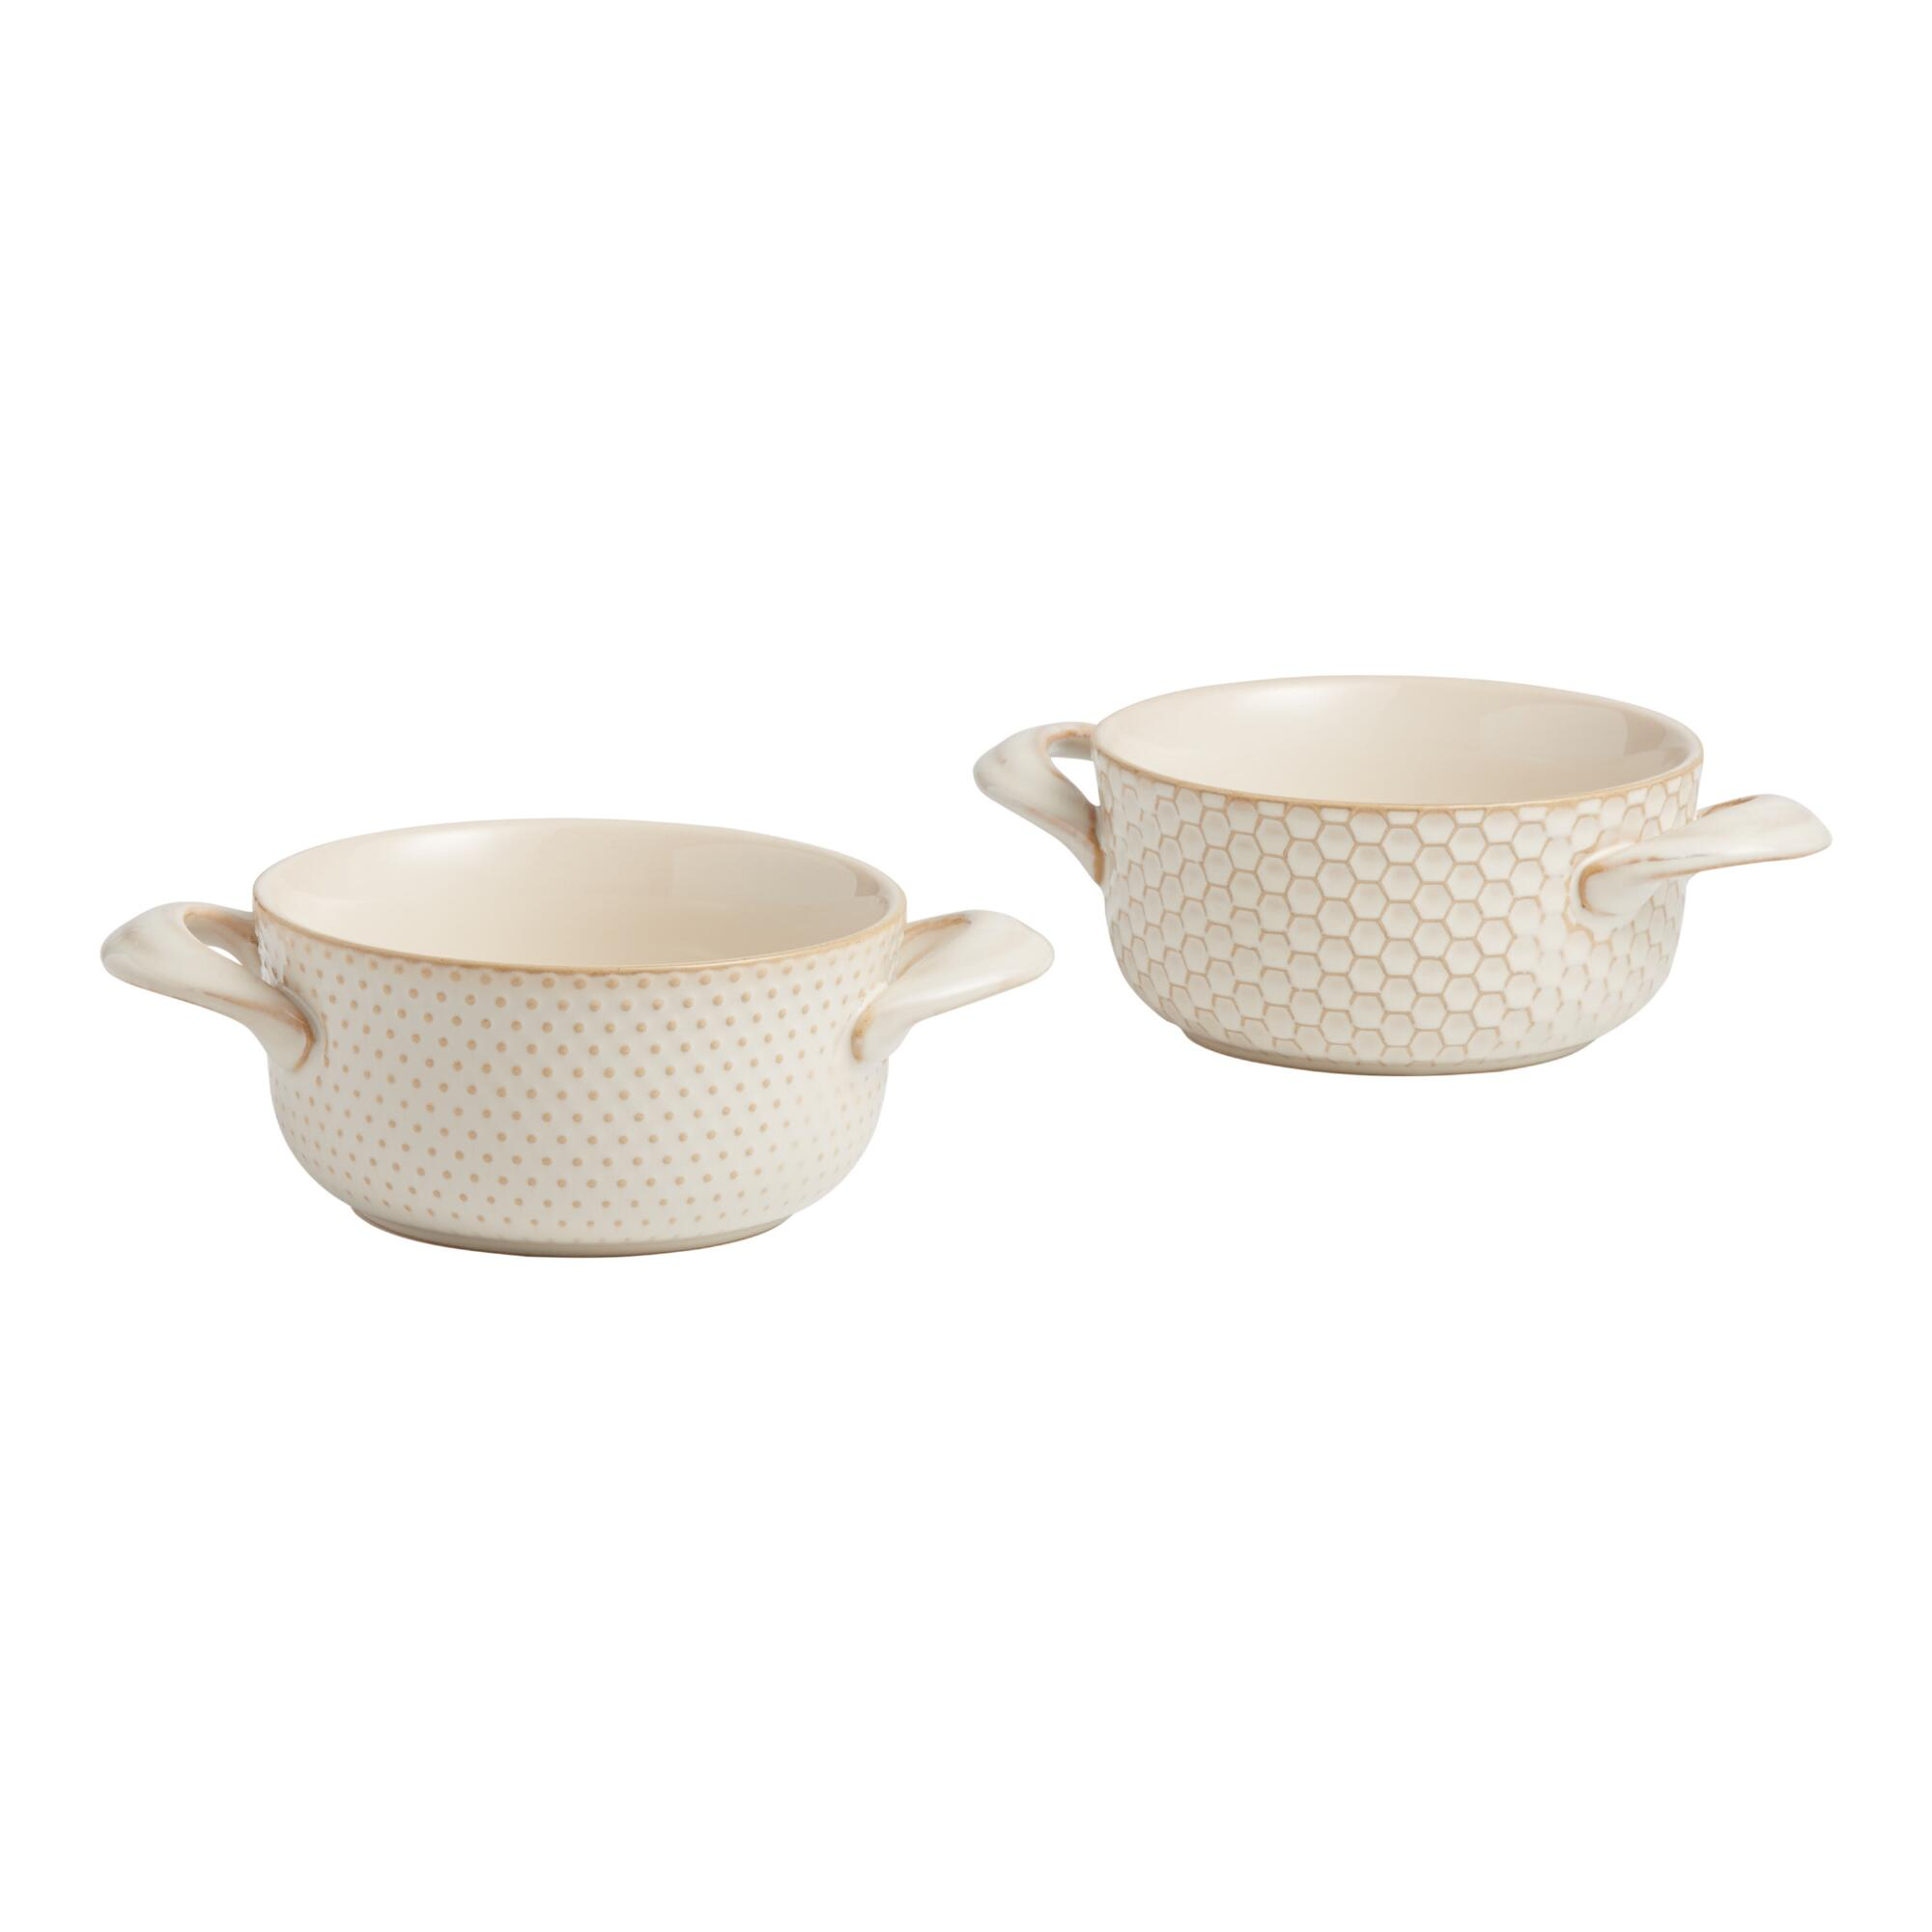 textured ceramic soup bowls